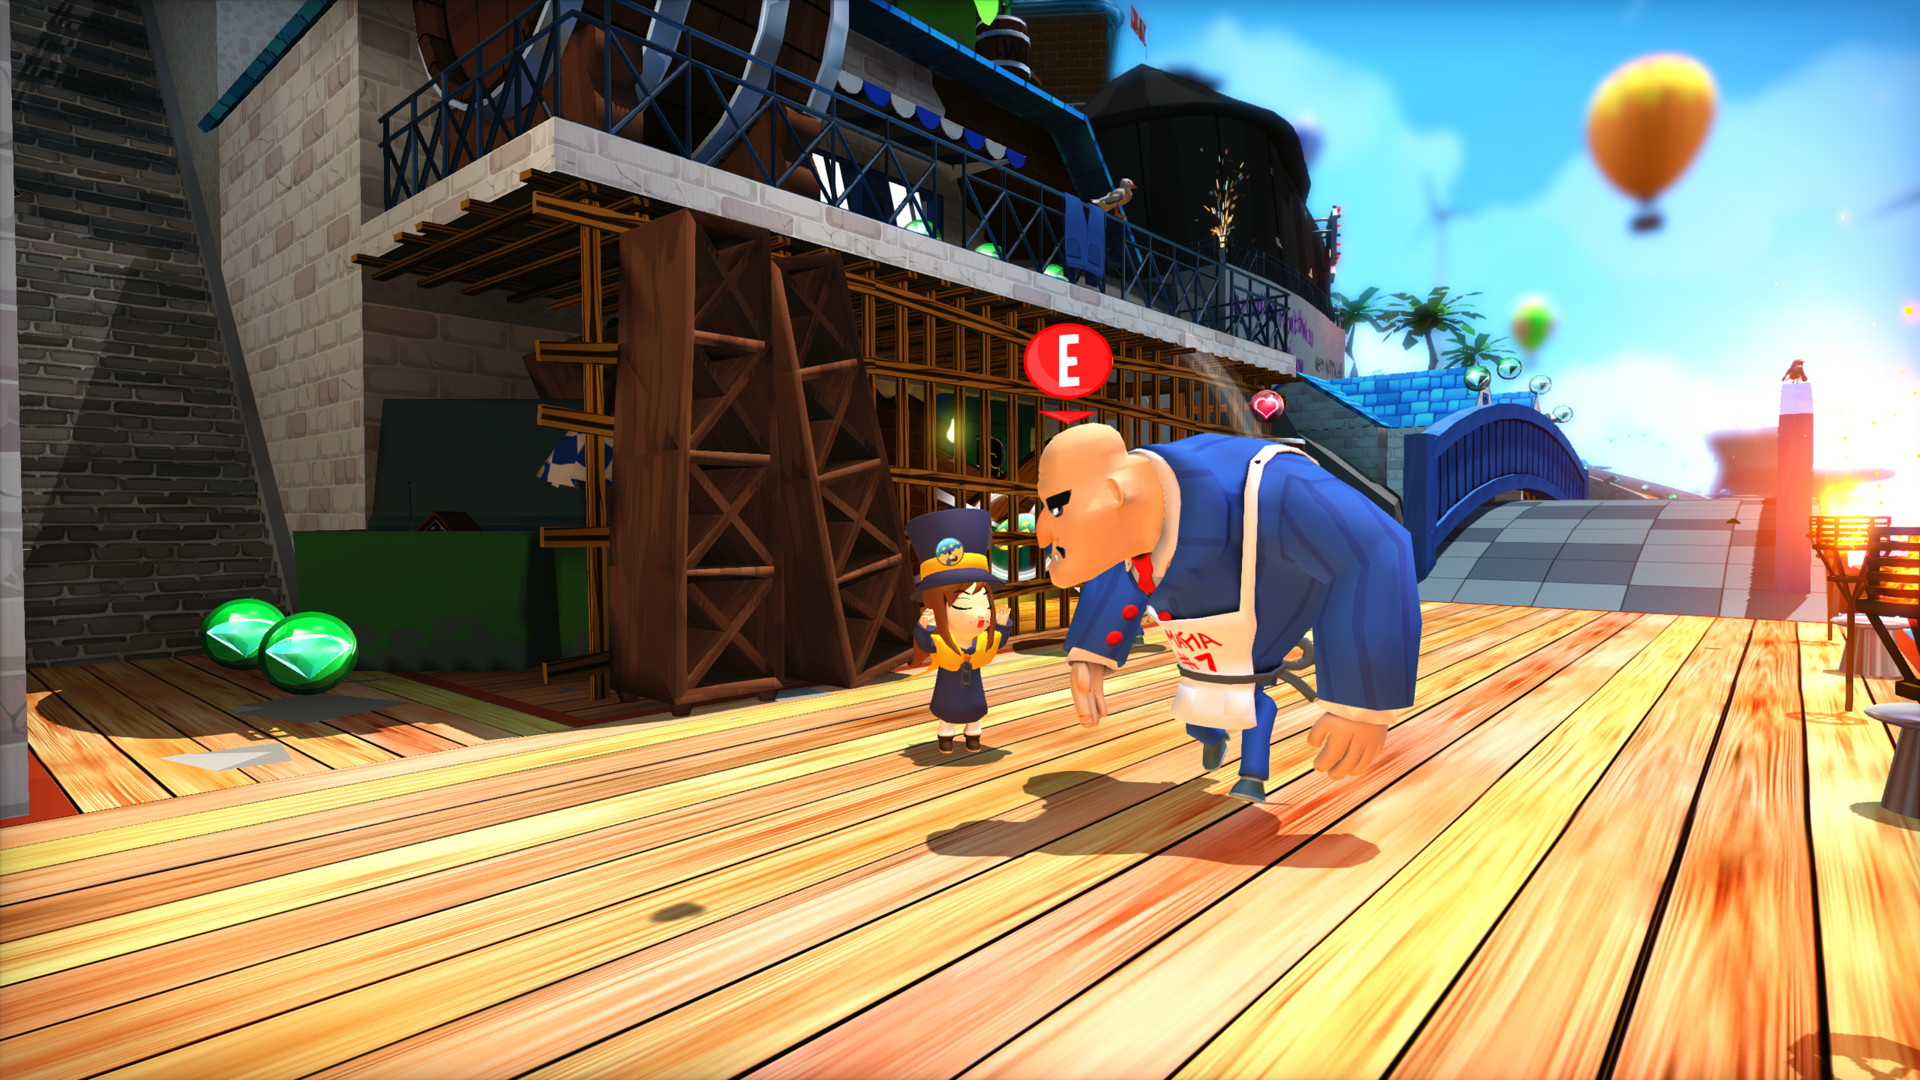 download a hat in time-codex cracked full version singlelink iso rar english language free for pc